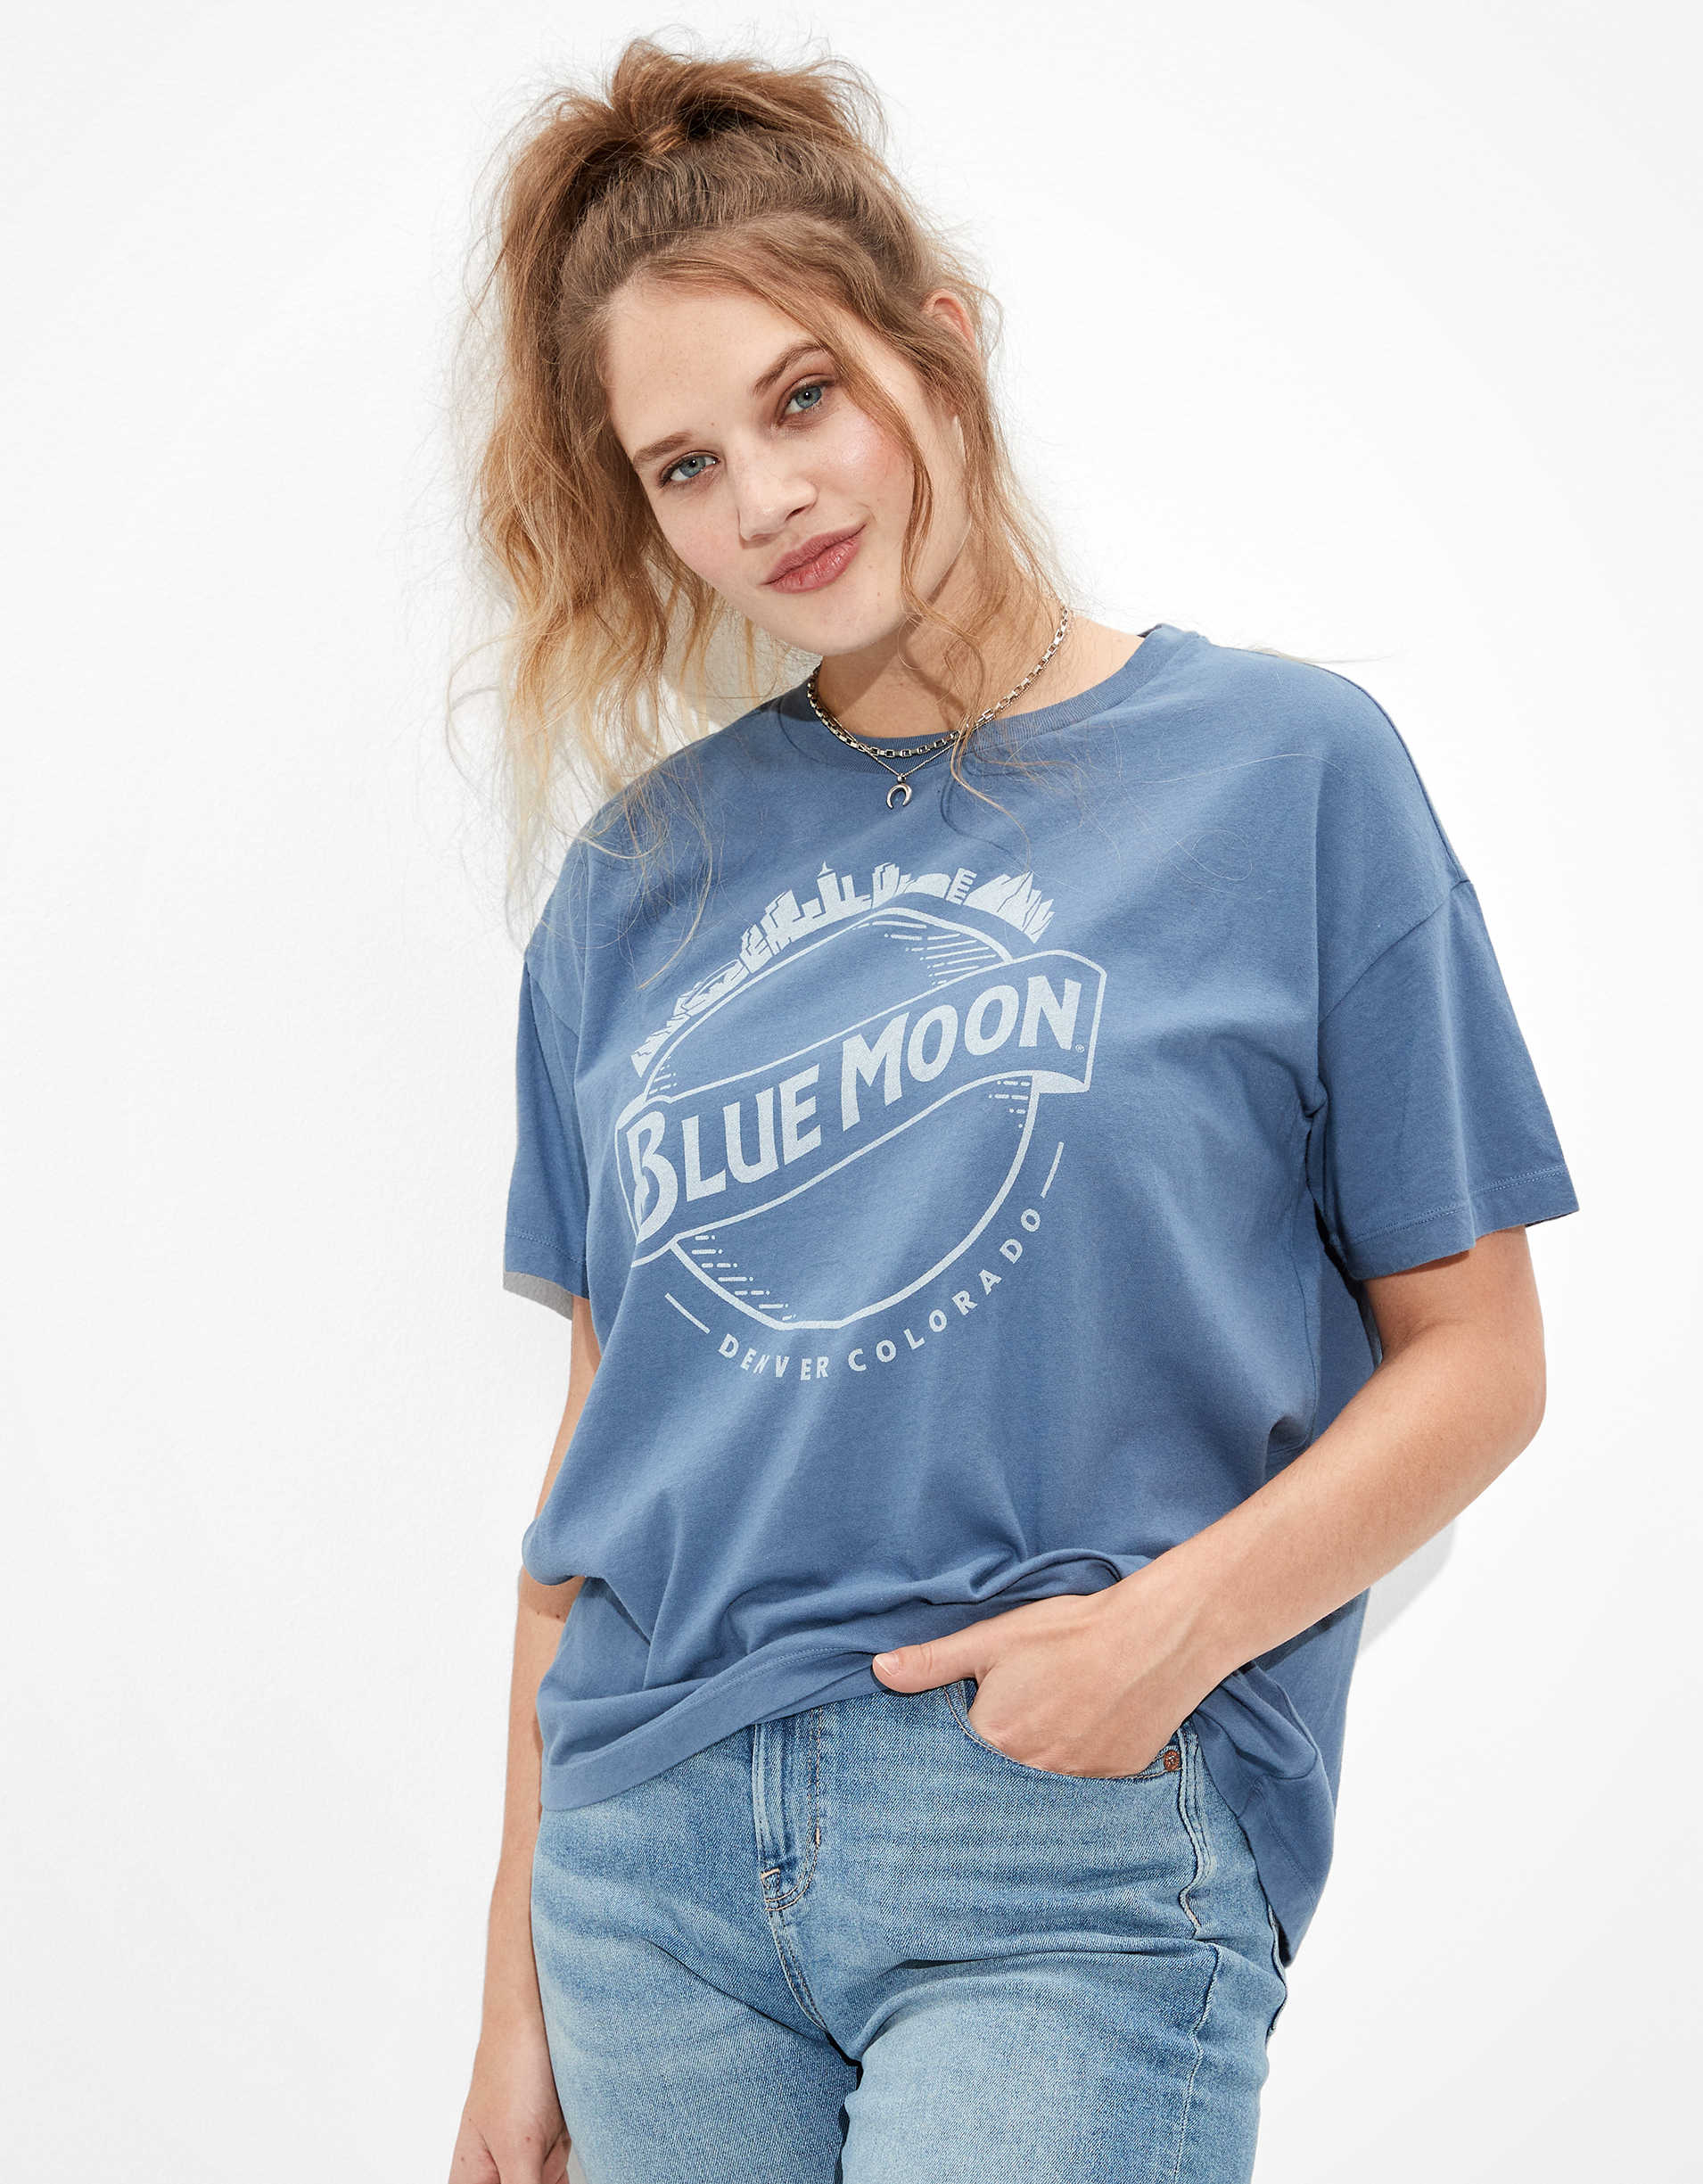 Tailgate Women's Blue Moon Oversized Graphic T-Shirt